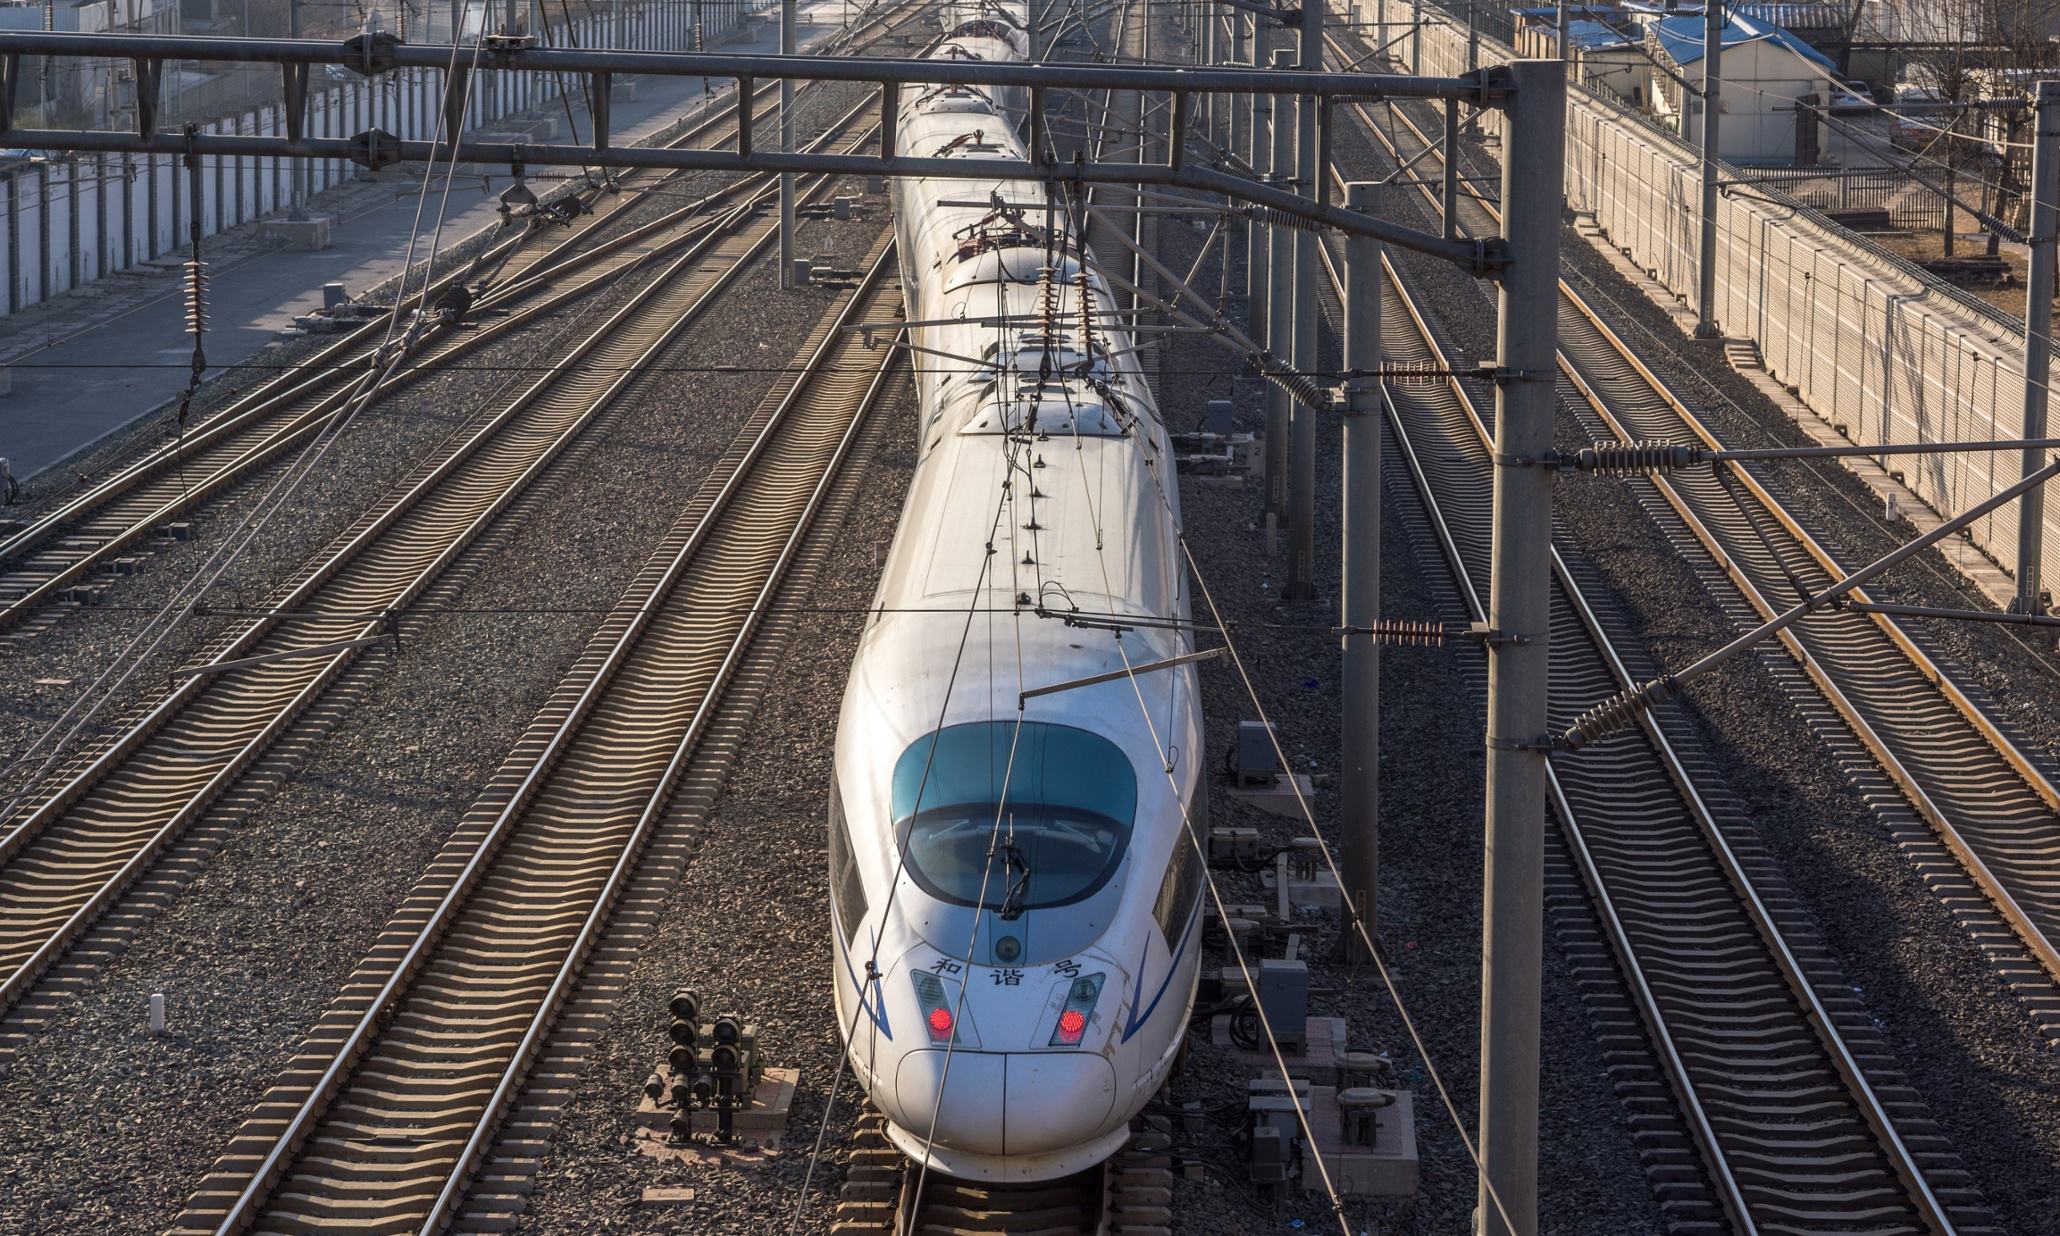 Indian bullet train could transform subcontinent - if it ever arrives